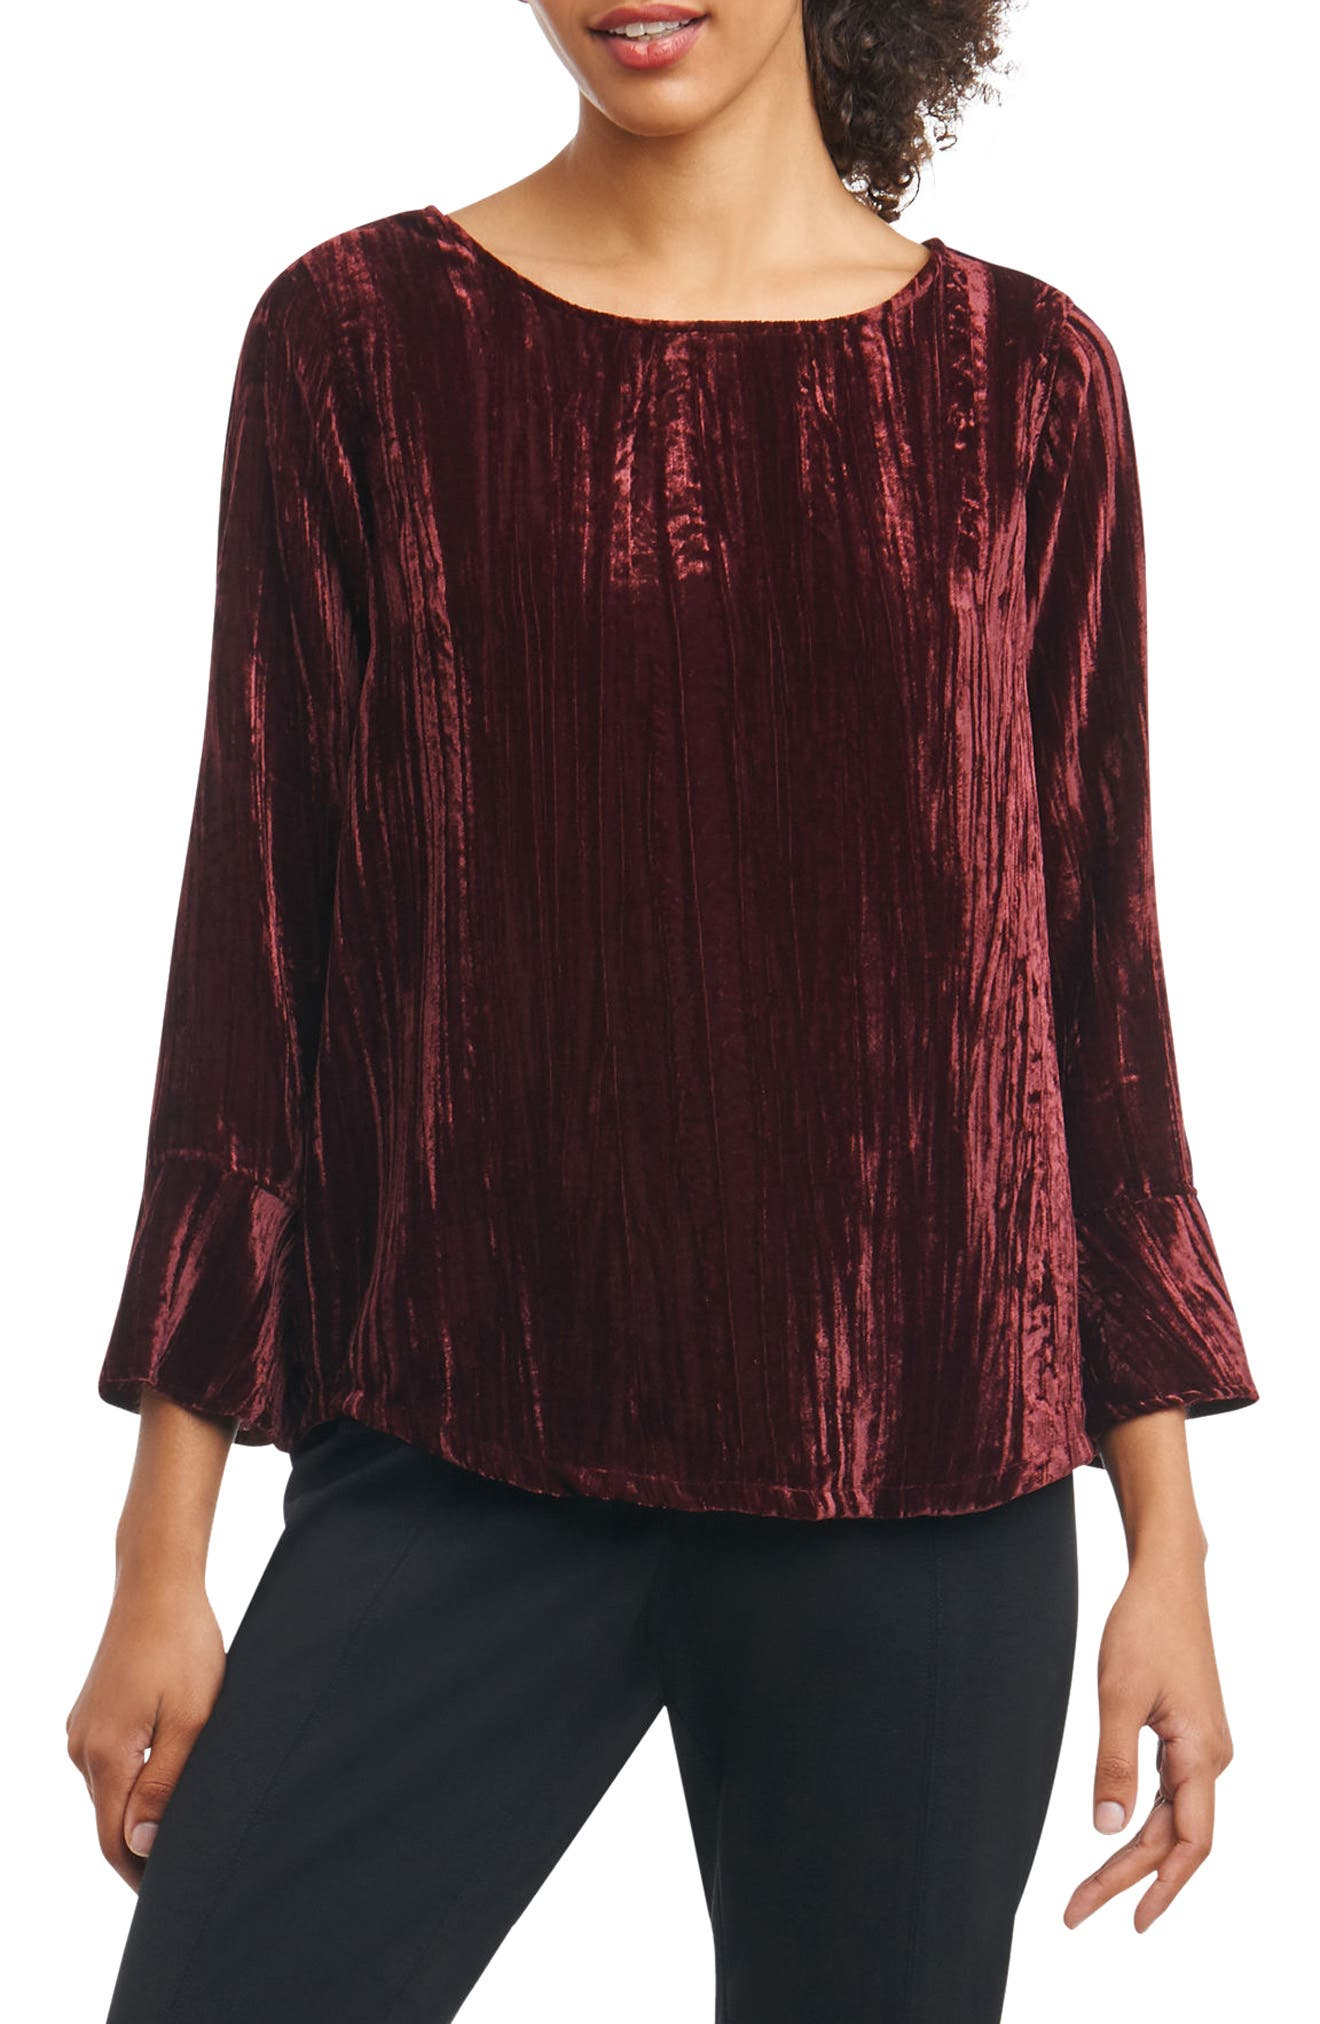 Foxcroft Korin Broomstick Velvet Top (Regular & Petite)